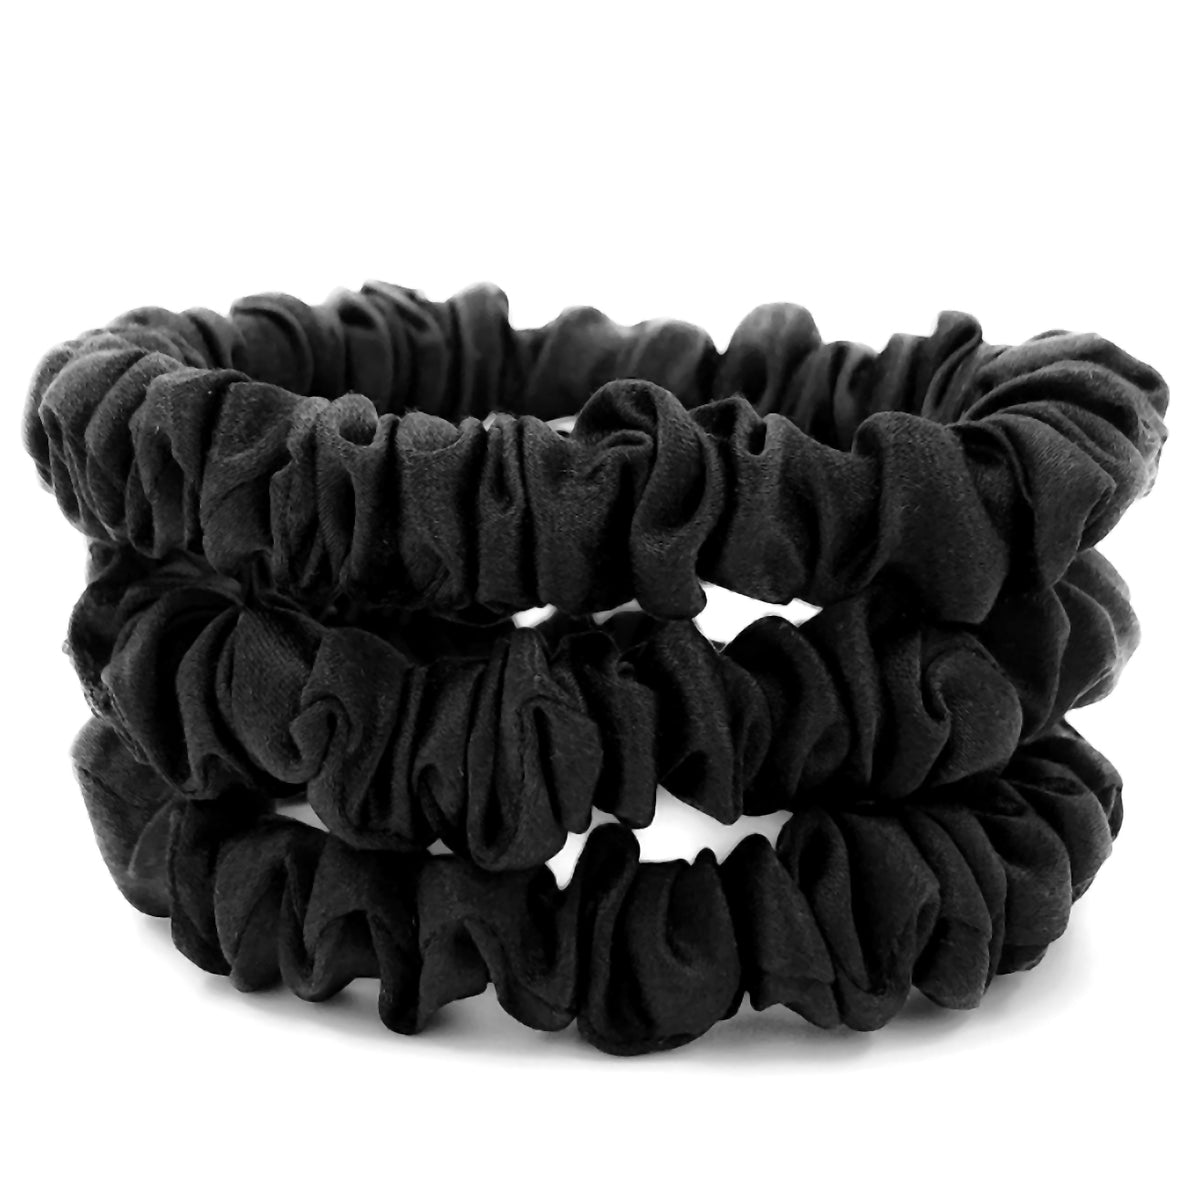 Small Midnight Black Silk Scrunchies